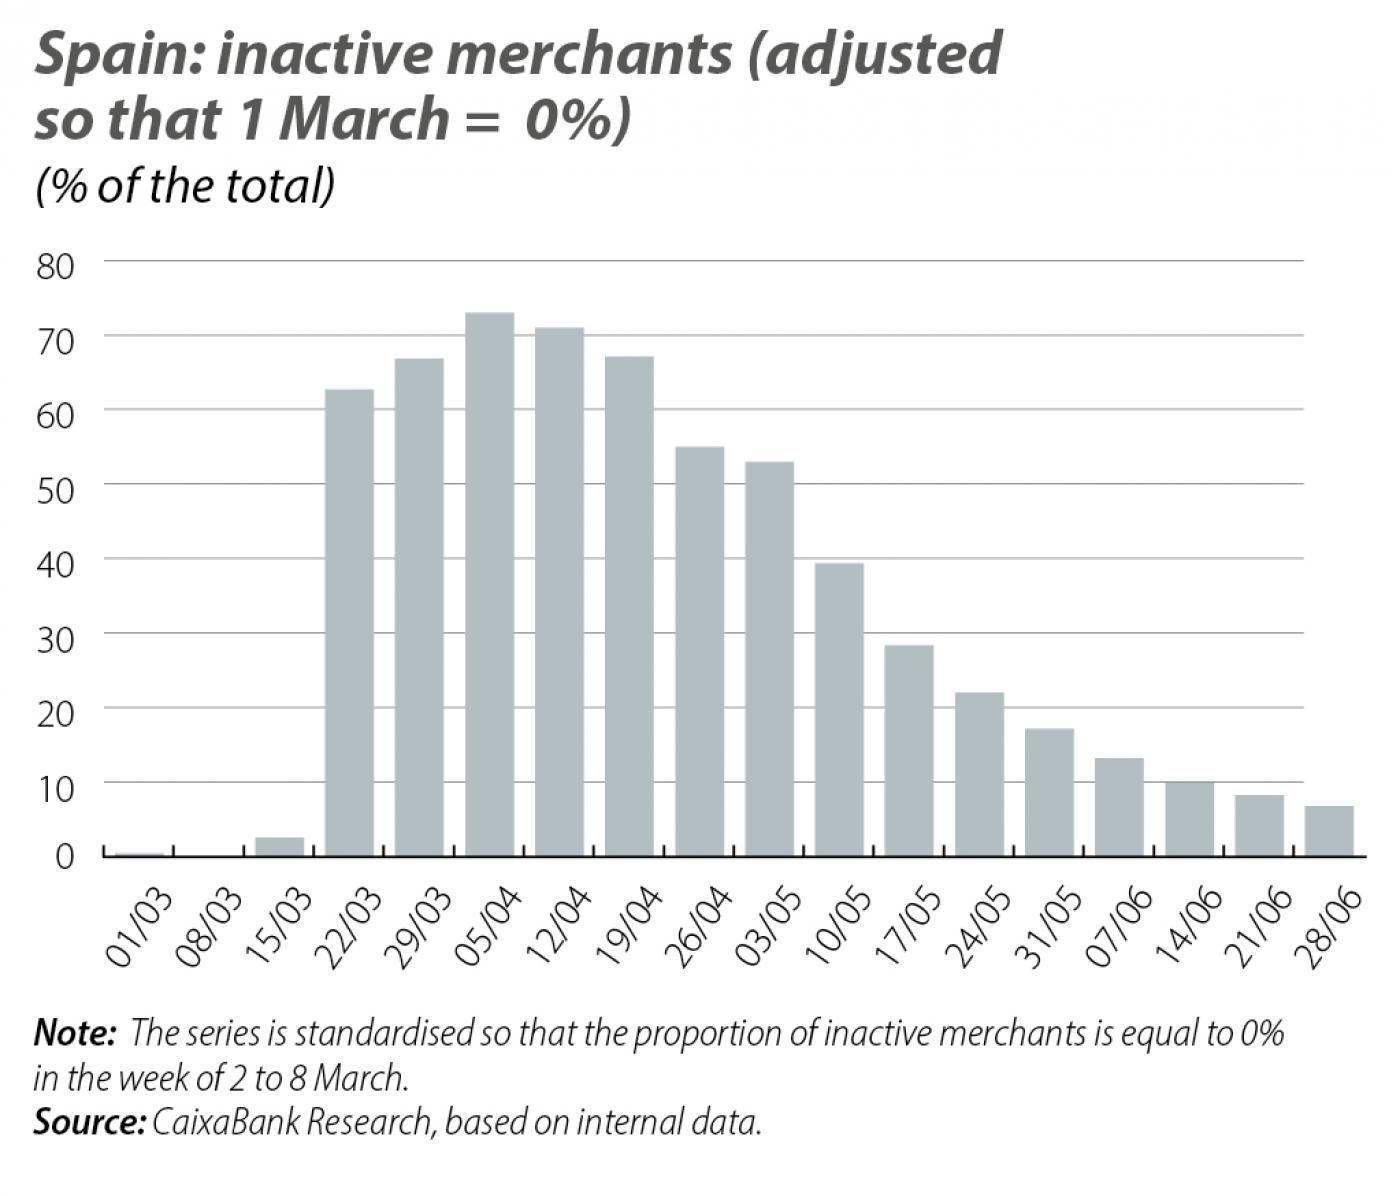 Spain: inactive merchants (adjusted so that 1 March = 0%)